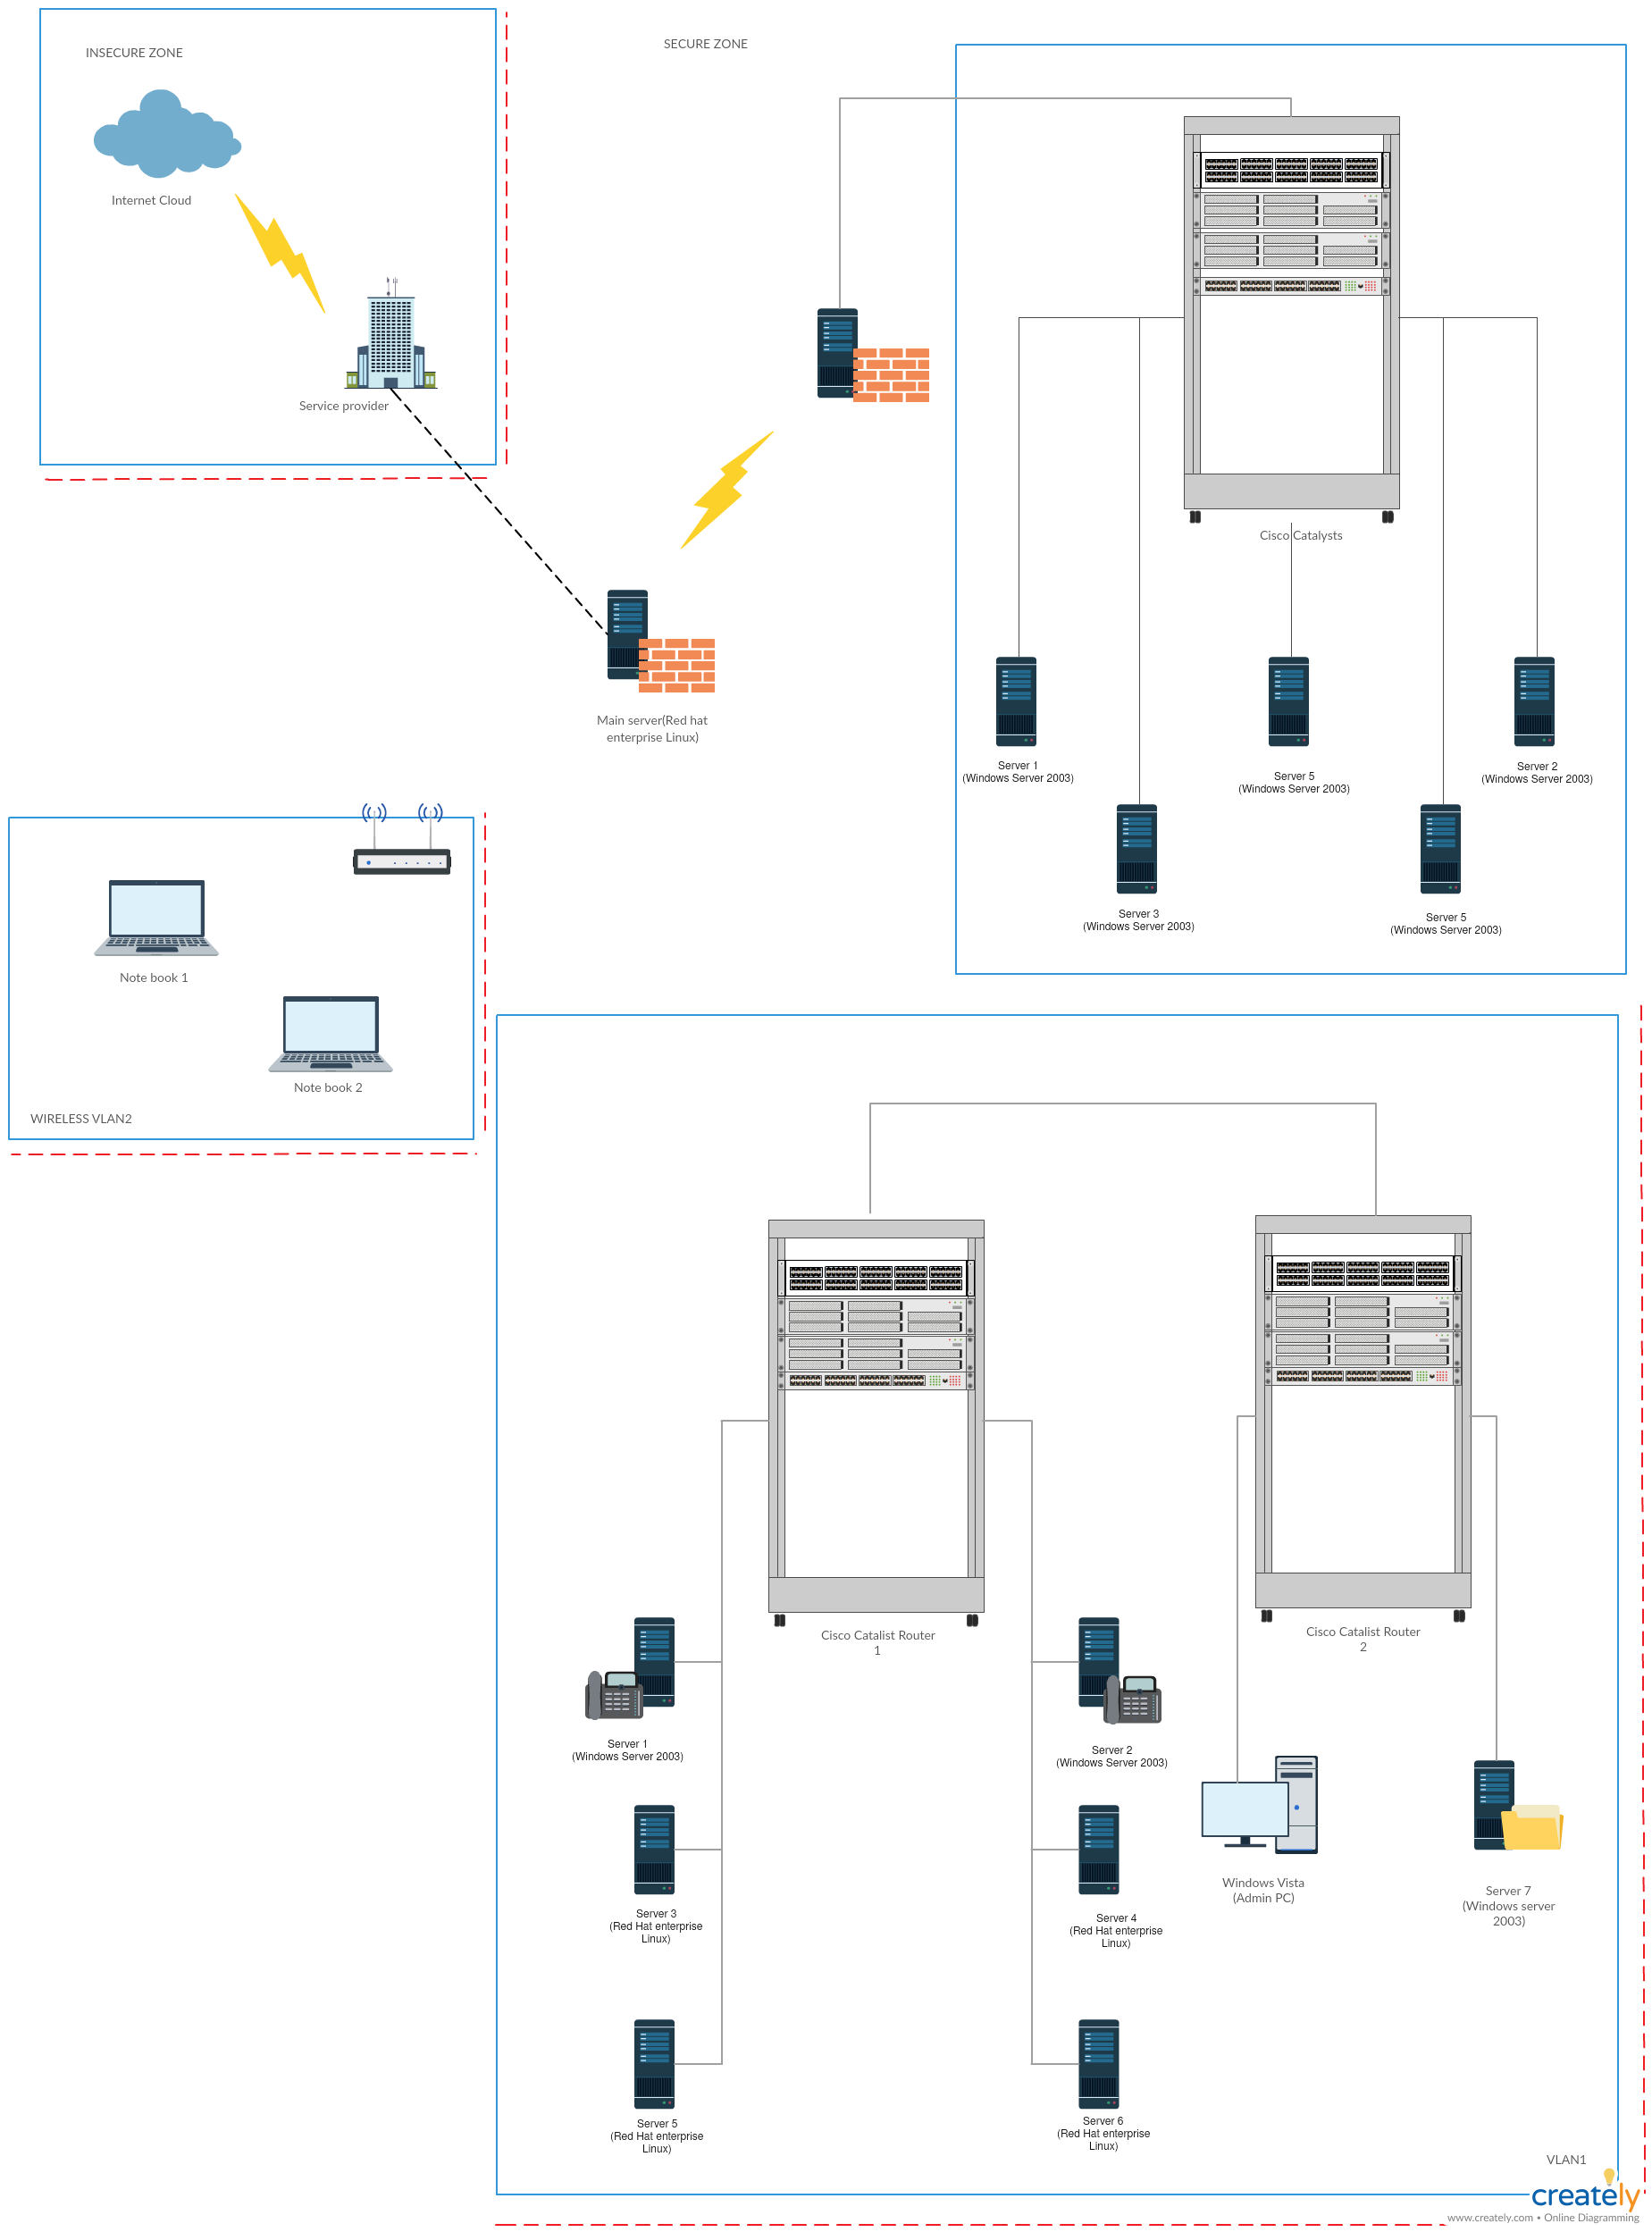 small resolution of virtual local area network network diagram template click the image to get all the important